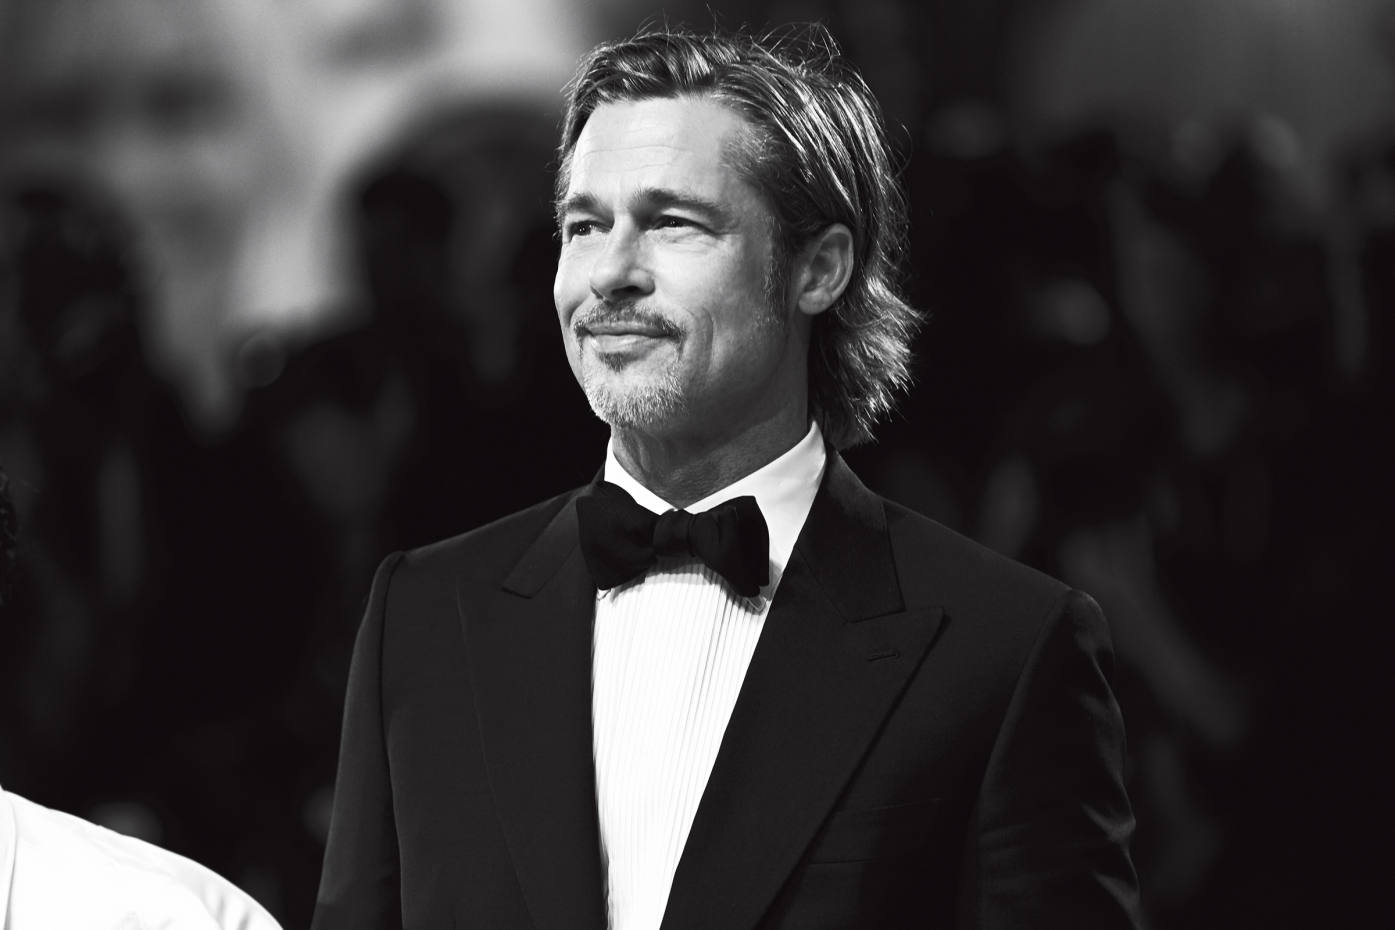 Brad Pitt in Brioni at the premiere of Ad Astra